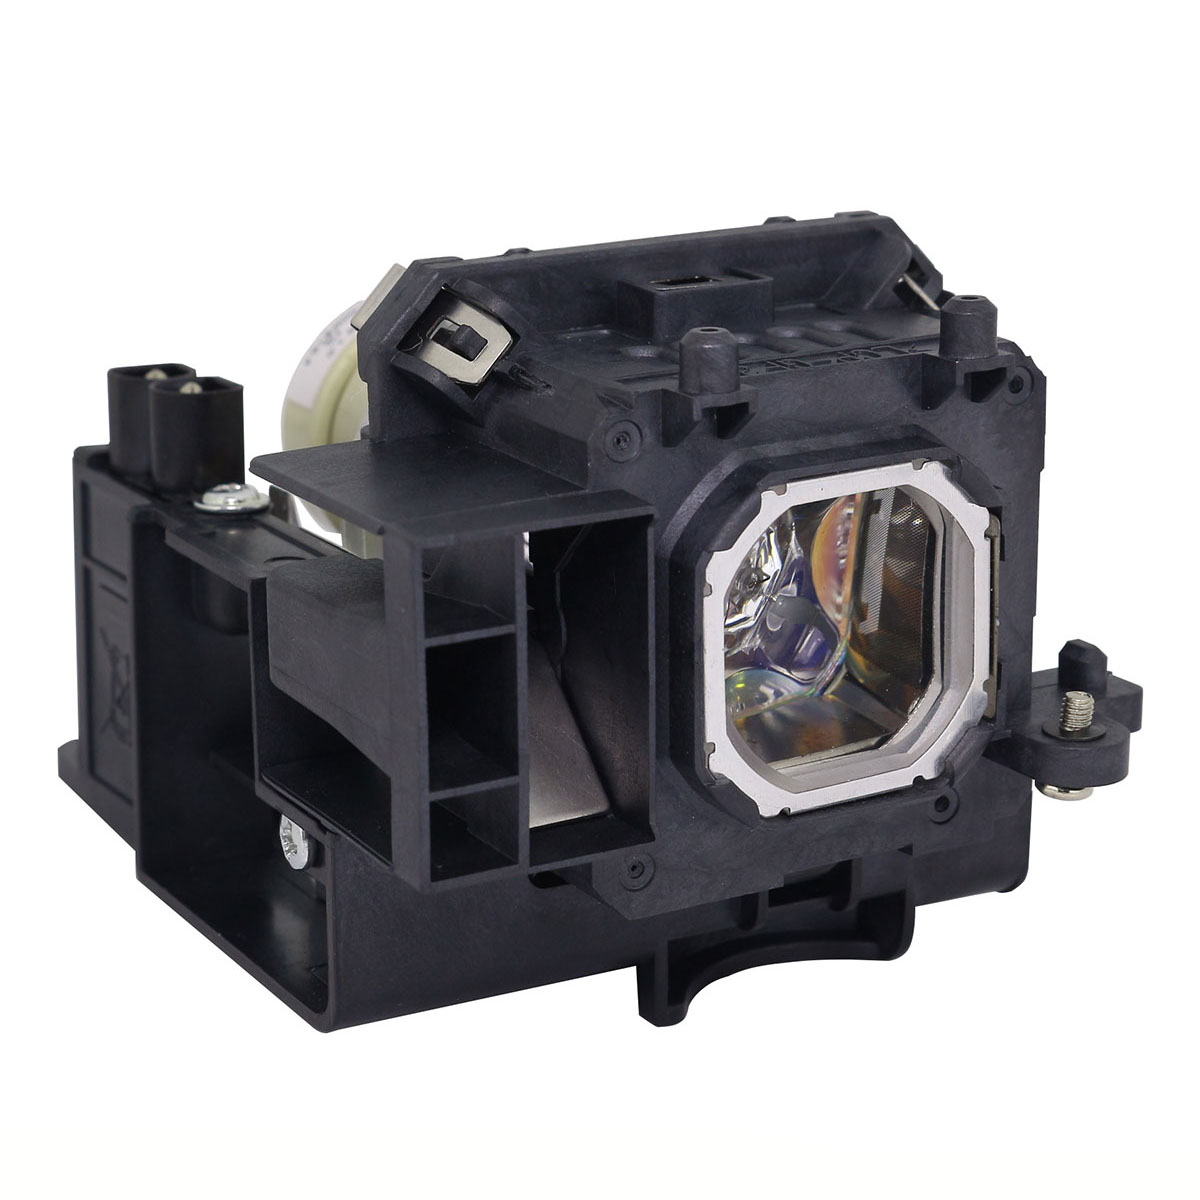 Original Philips Projector Lamp Replacement with Housing for Dukane PowerLite G5910 - image 1 of 5